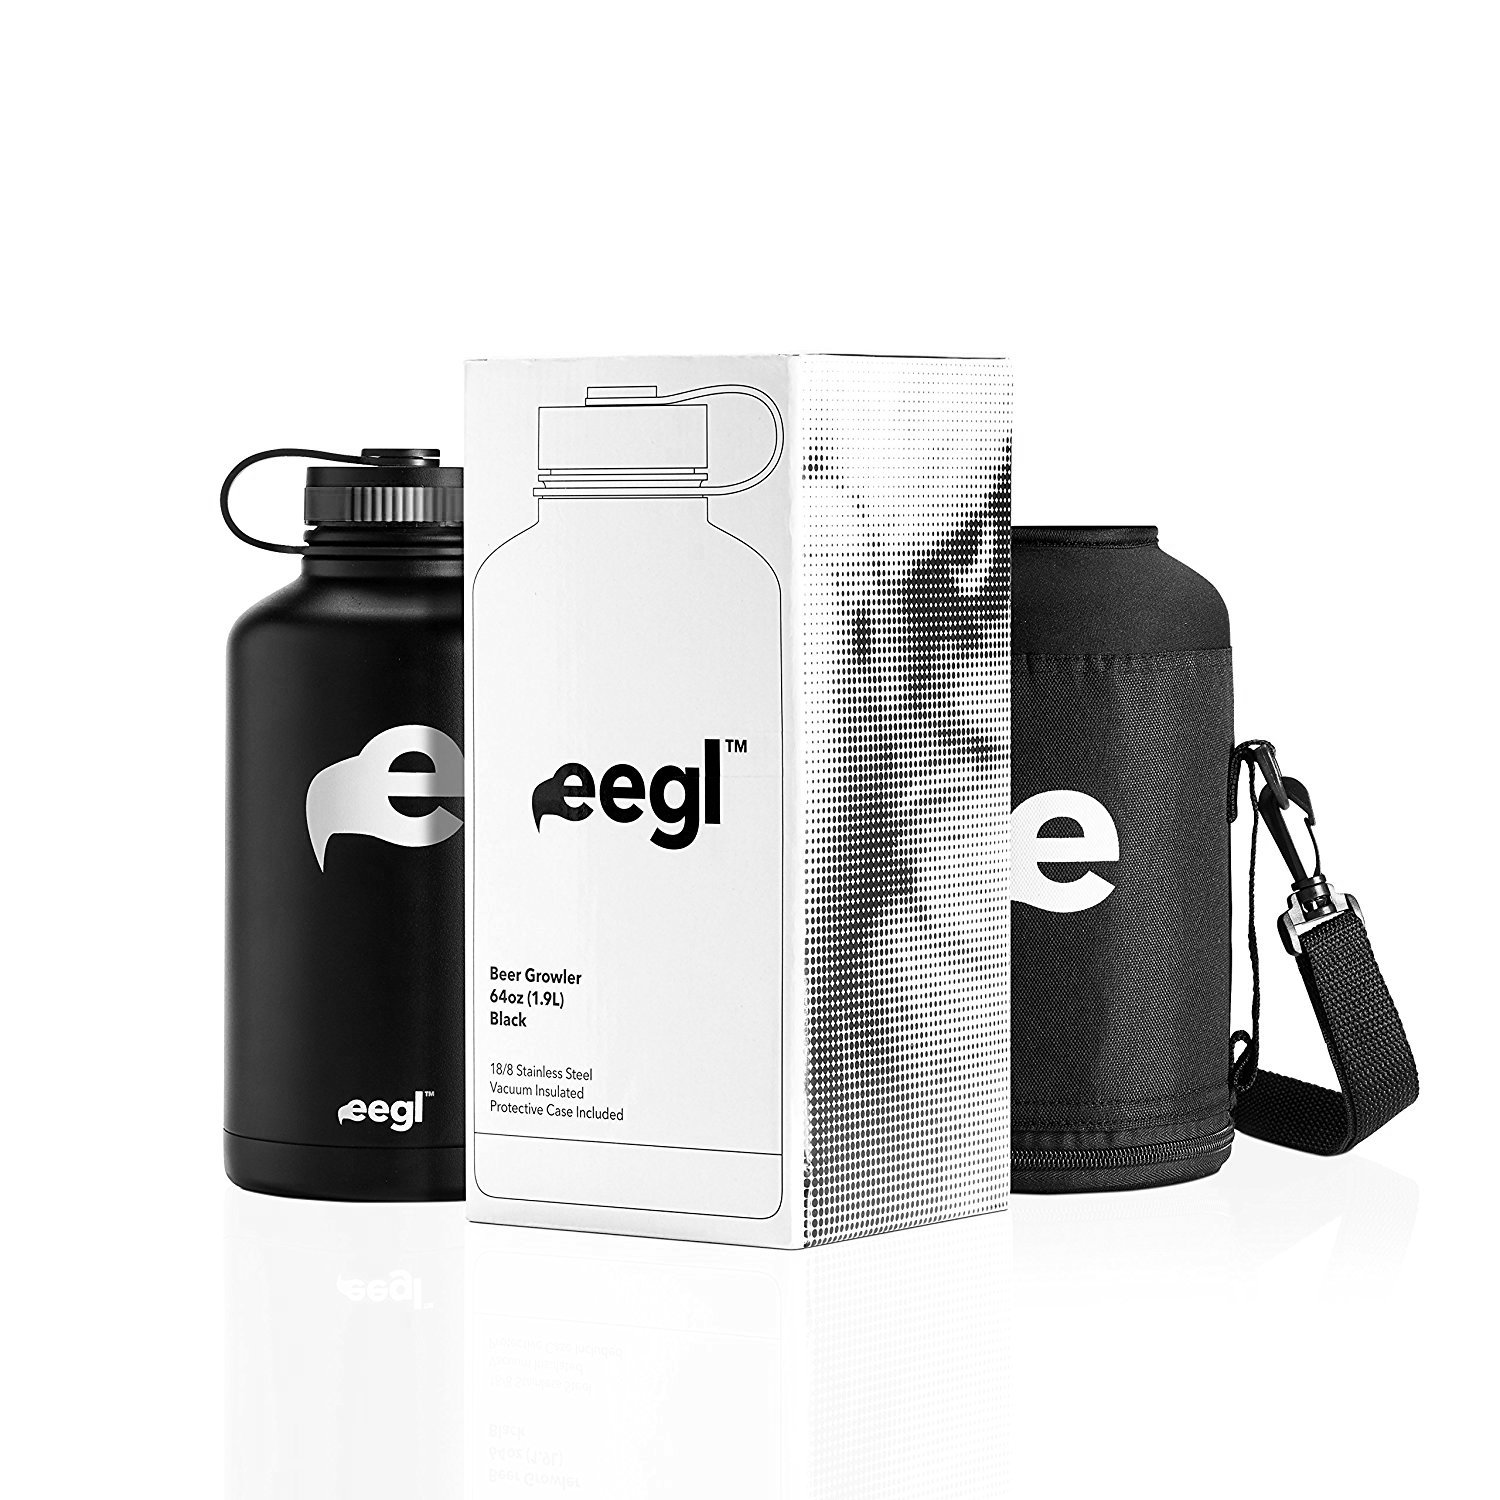 eegl Stainless Steel Insulated Beer Growler - 64 oz Water Bottle - Includes Carry Case - Double Wall Vacuum Sealed Wide Mouth Design. Five Year Guarantee! Perfect Temperature Control from by eegl (Image #6)